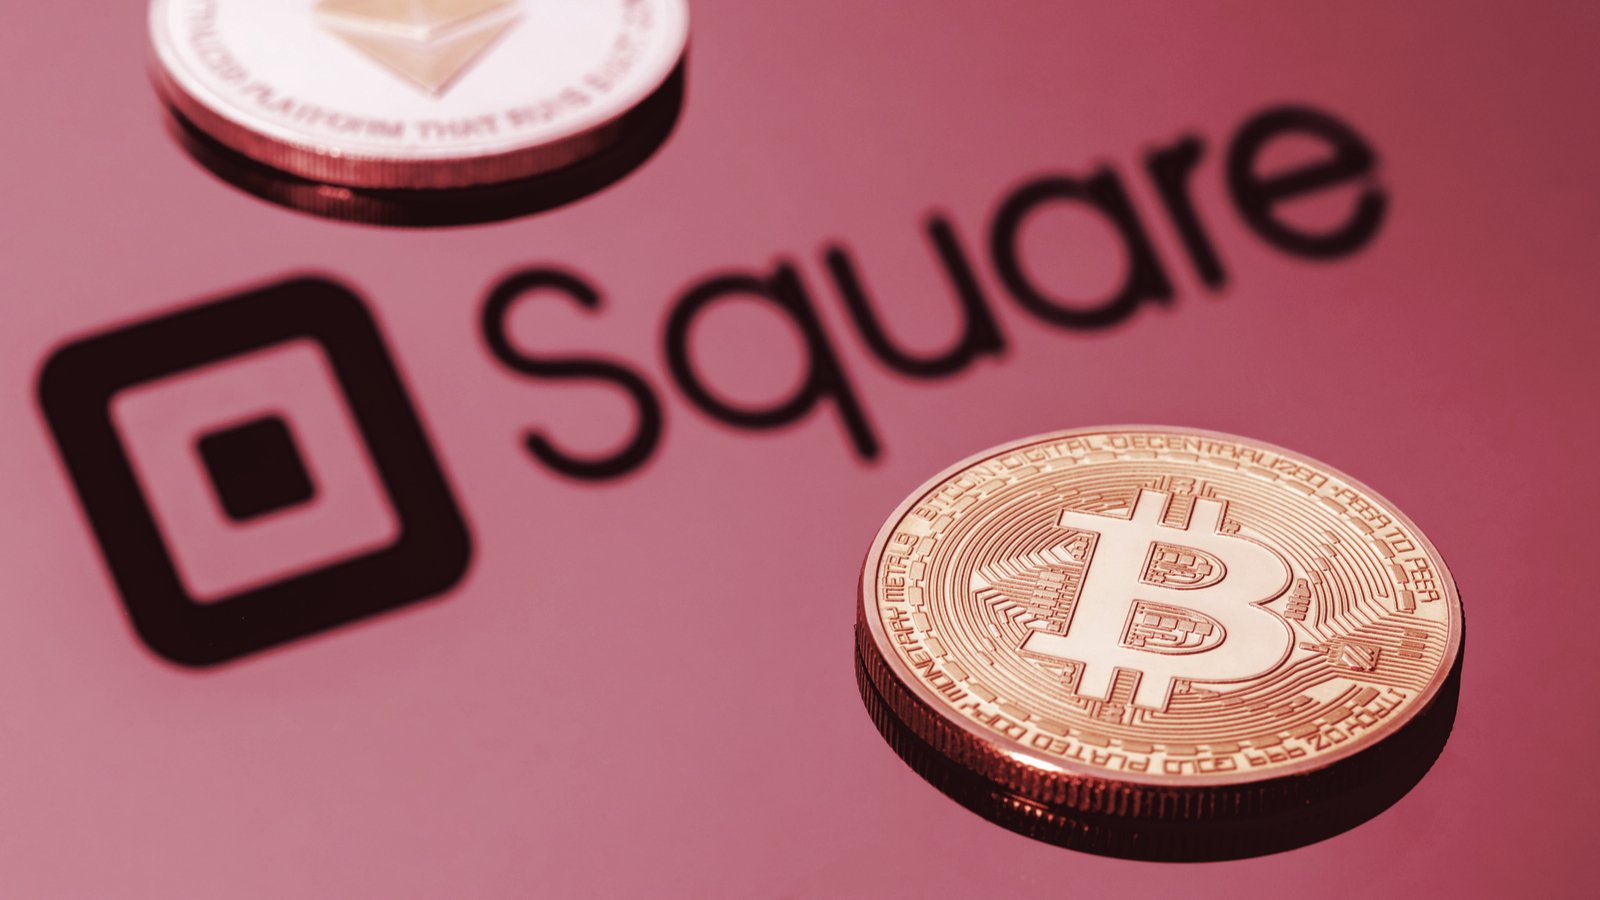 Square Plans to Build a Decentralized Bitcoin Exchange, Says Jack Dorsey